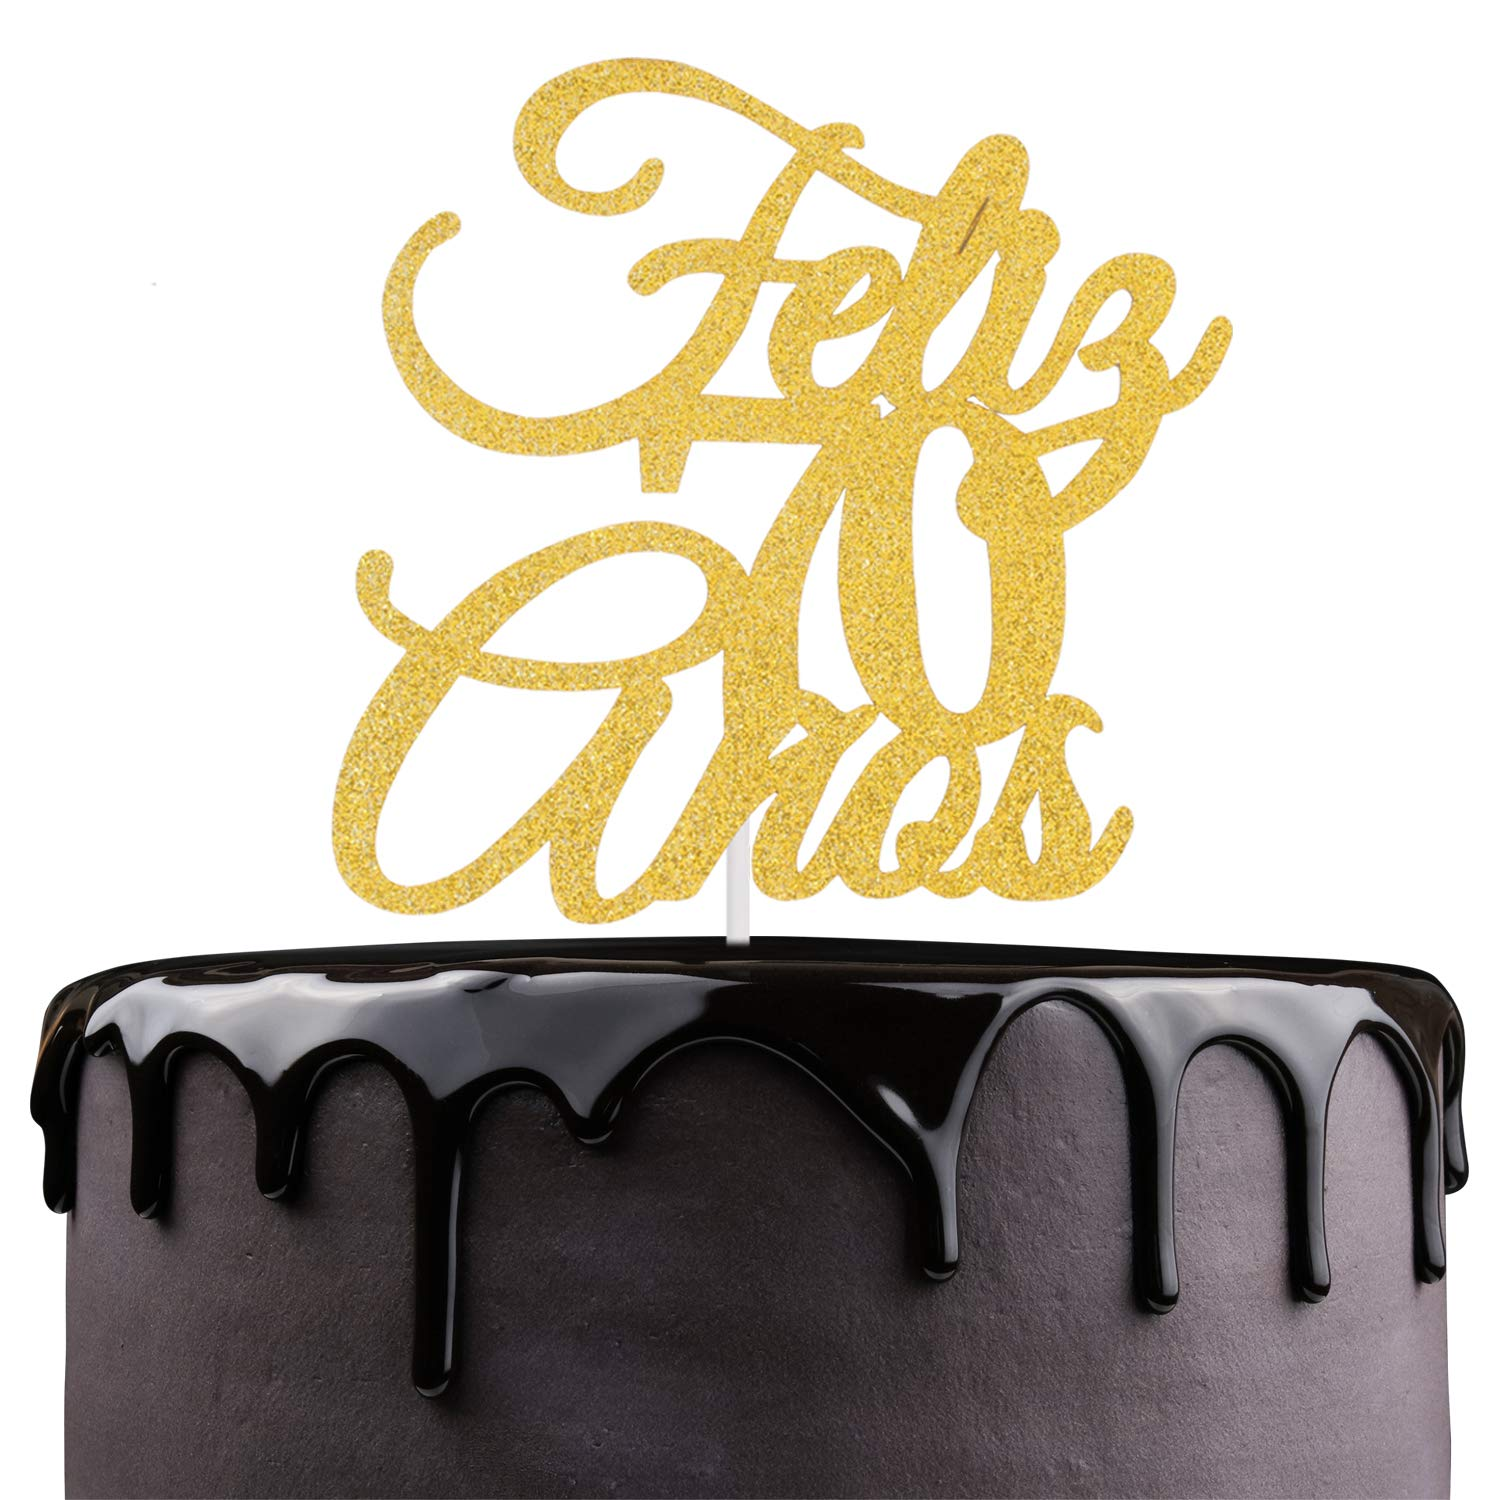 Feliz 70th Anos Anniversary Cake Topper - Gold Glitter Seventy Years Feliz Cumpleanos - Amada y Bendecida 70 Years Loved Blessed - Spanish Summer ...